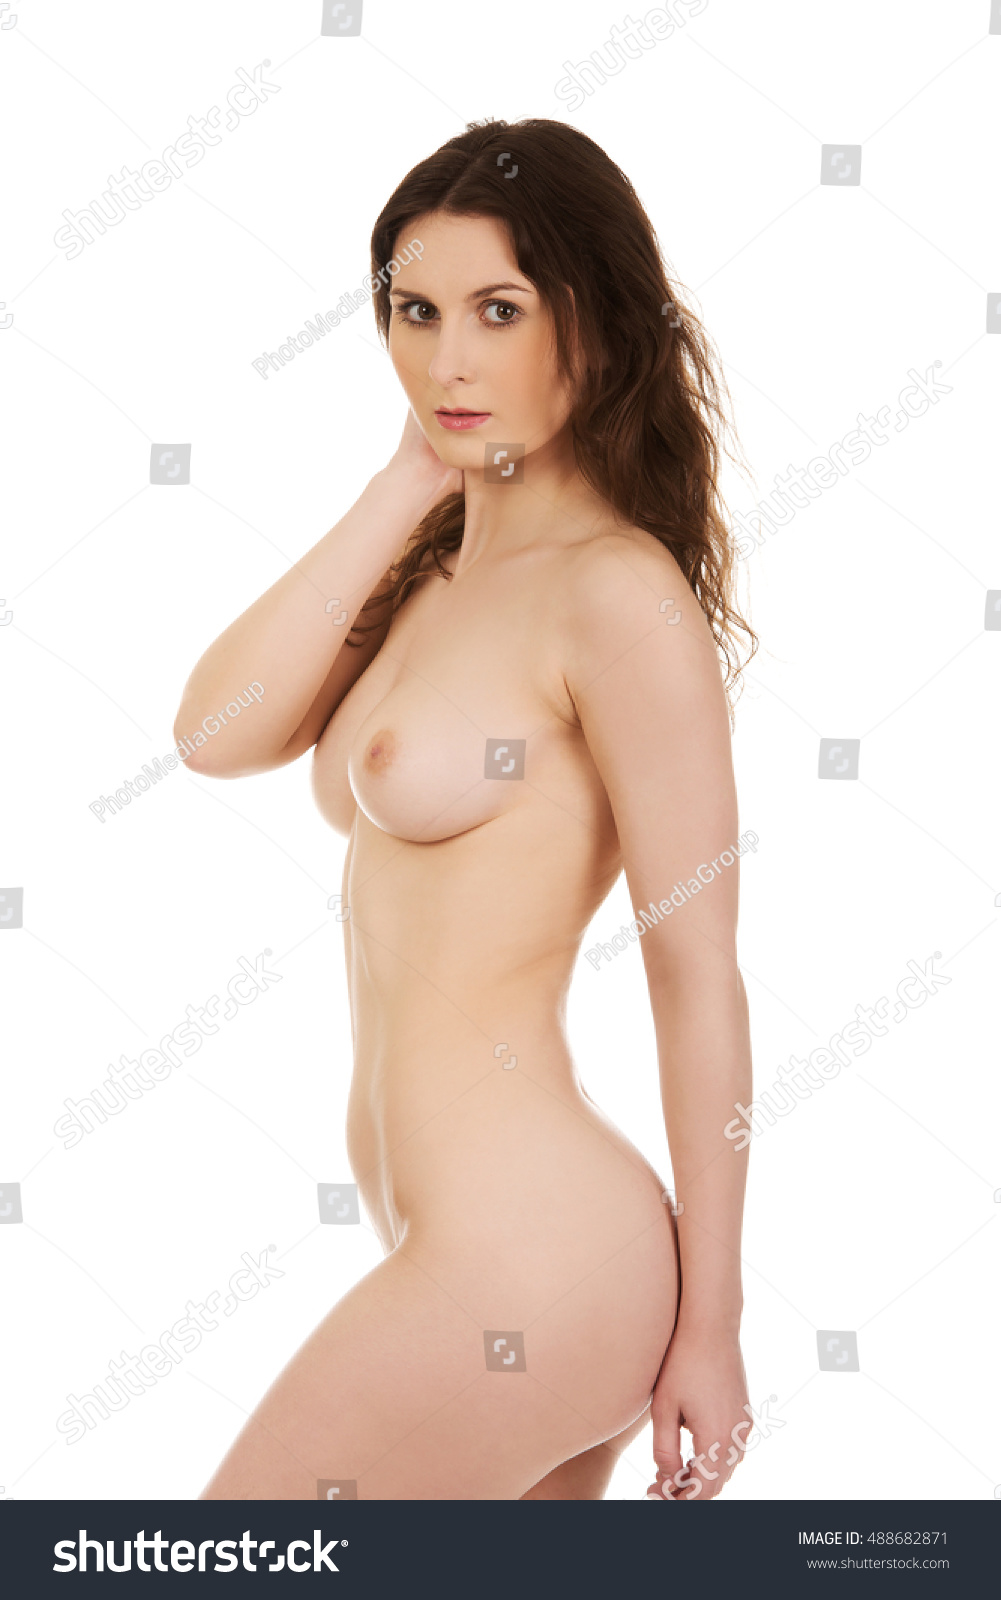 beautiful woman naked breast stock photo (royalty free) 488682871